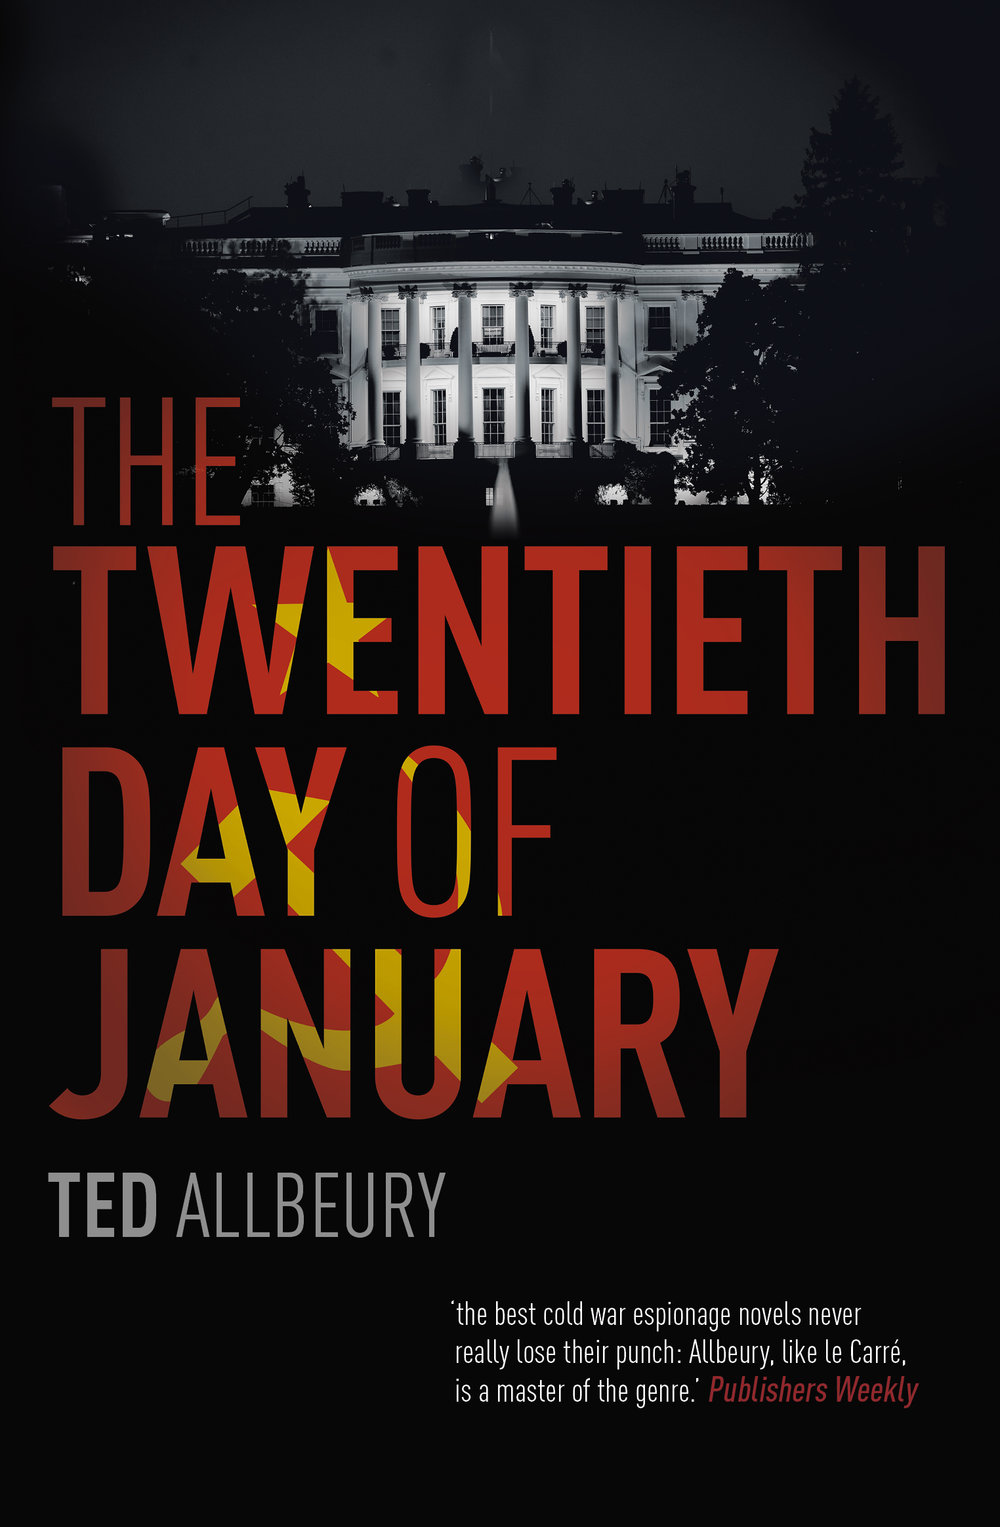 THE TWENTIETH DAY OF JANUARY  Thriller, 224 pages Hodder, Jan 2018 (originally 1982)  It's 1980 and the Cold War continues to rage. Seemingly out of nowhere, wealthy businessman Logan Powell has become President-elect and is weeks away from assuming the most powerful position in the world. Across the Atlantic, veteran British intelligence agent James MacKay uncovers shocking evidence that suggests something might be terribly wrong with the election. With the help of a reluctant CIA, MacKay sets out on a dangerous and daring mission to discover if the unthinkable has occurred: is President-elect Powell actually a puppet of the Soviet Union.